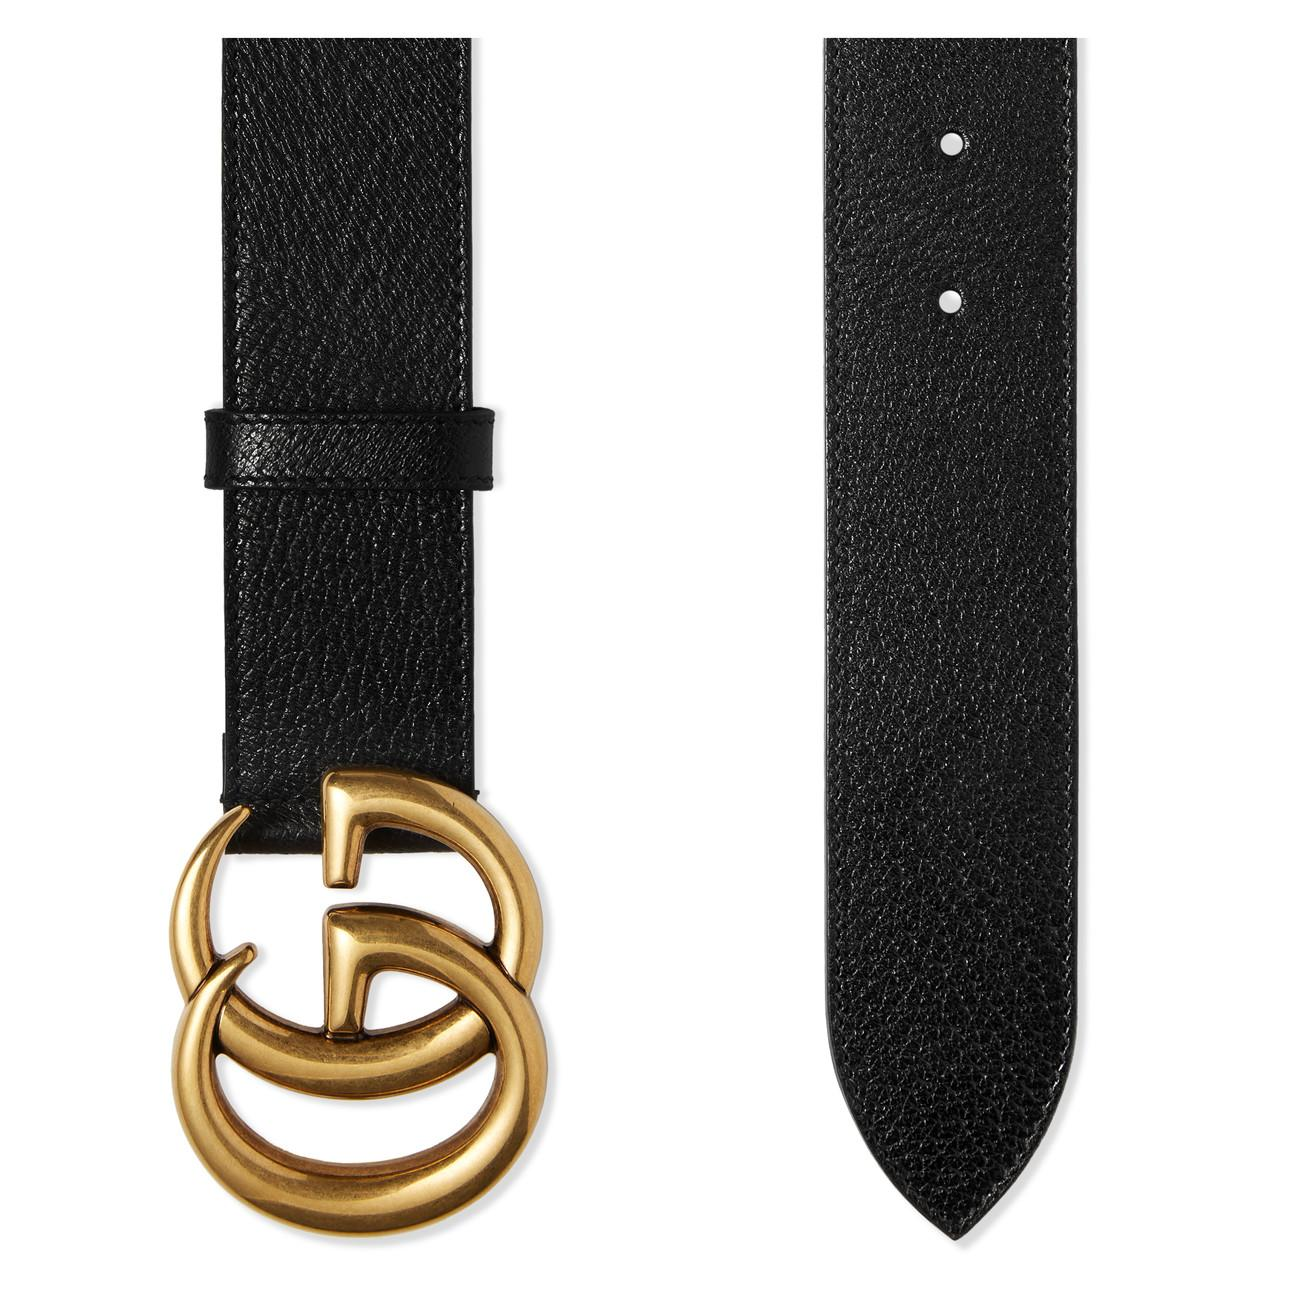 ae2e3052b35 Gucci - Black Leather Belt With Double G Buckle for Men - Lyst. View  fullscreen